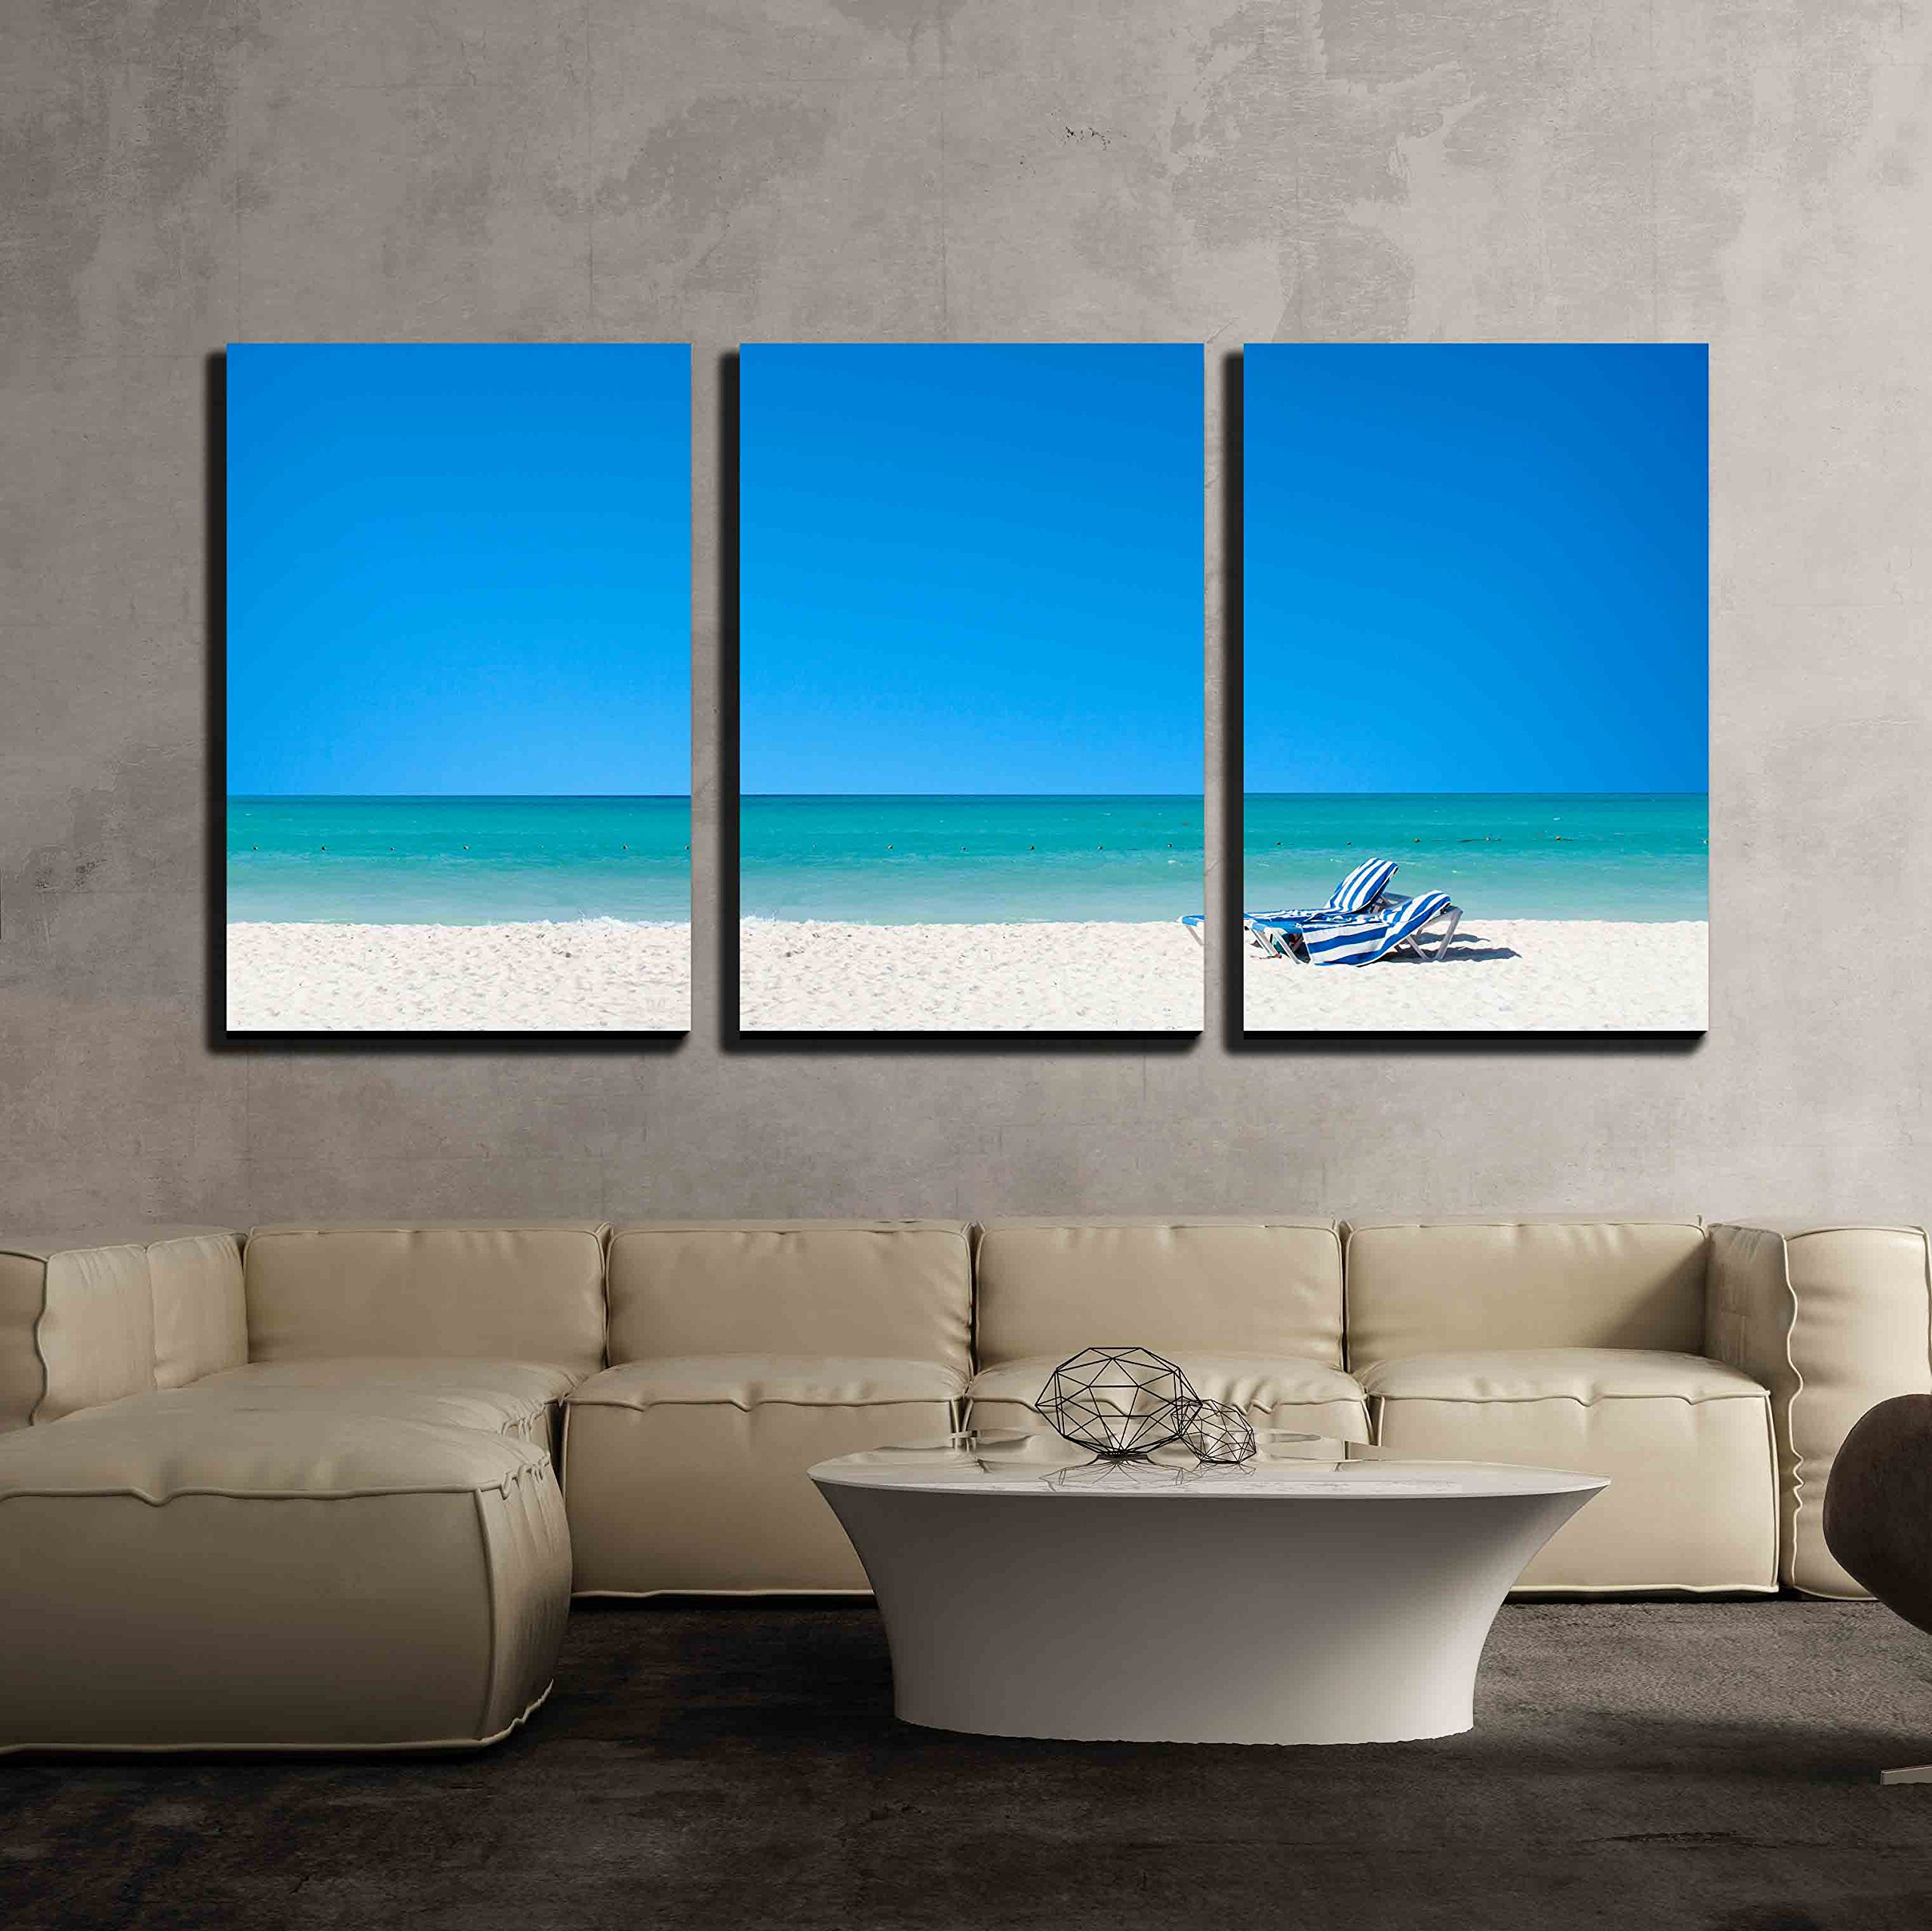 """wall26 - 3 Piece Canvas Wall Art - Summer Vacation on The Beach - Modern Home Decor Stretched and Framed Ready to Hang - 16""""x24""""x3 Panels"""